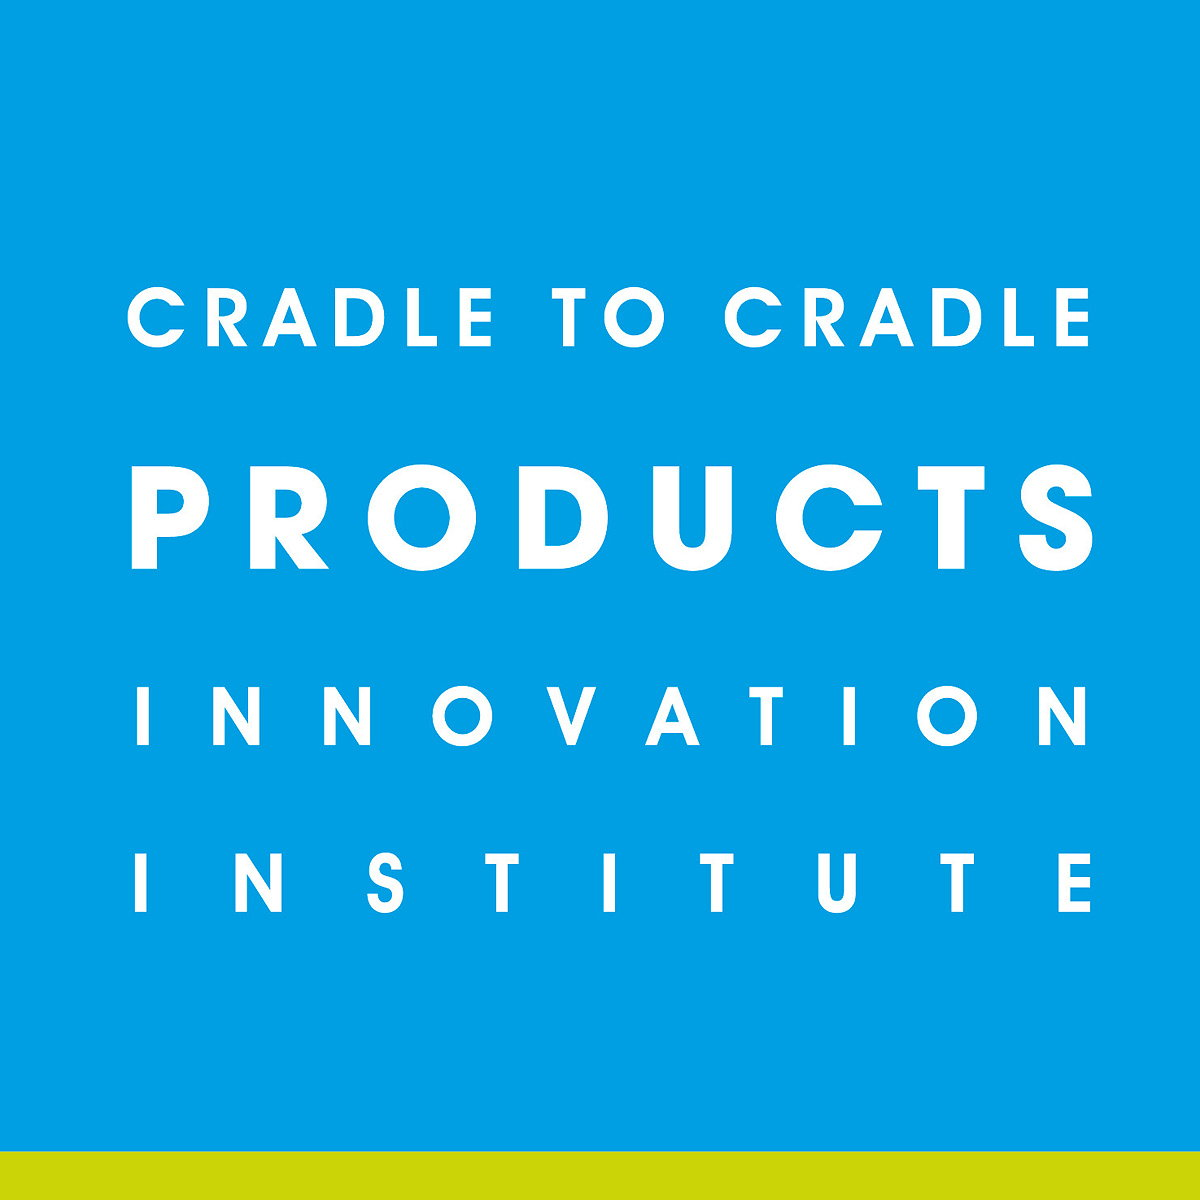 Cradle to Cradle Product Design Challenge V - Call for Entries